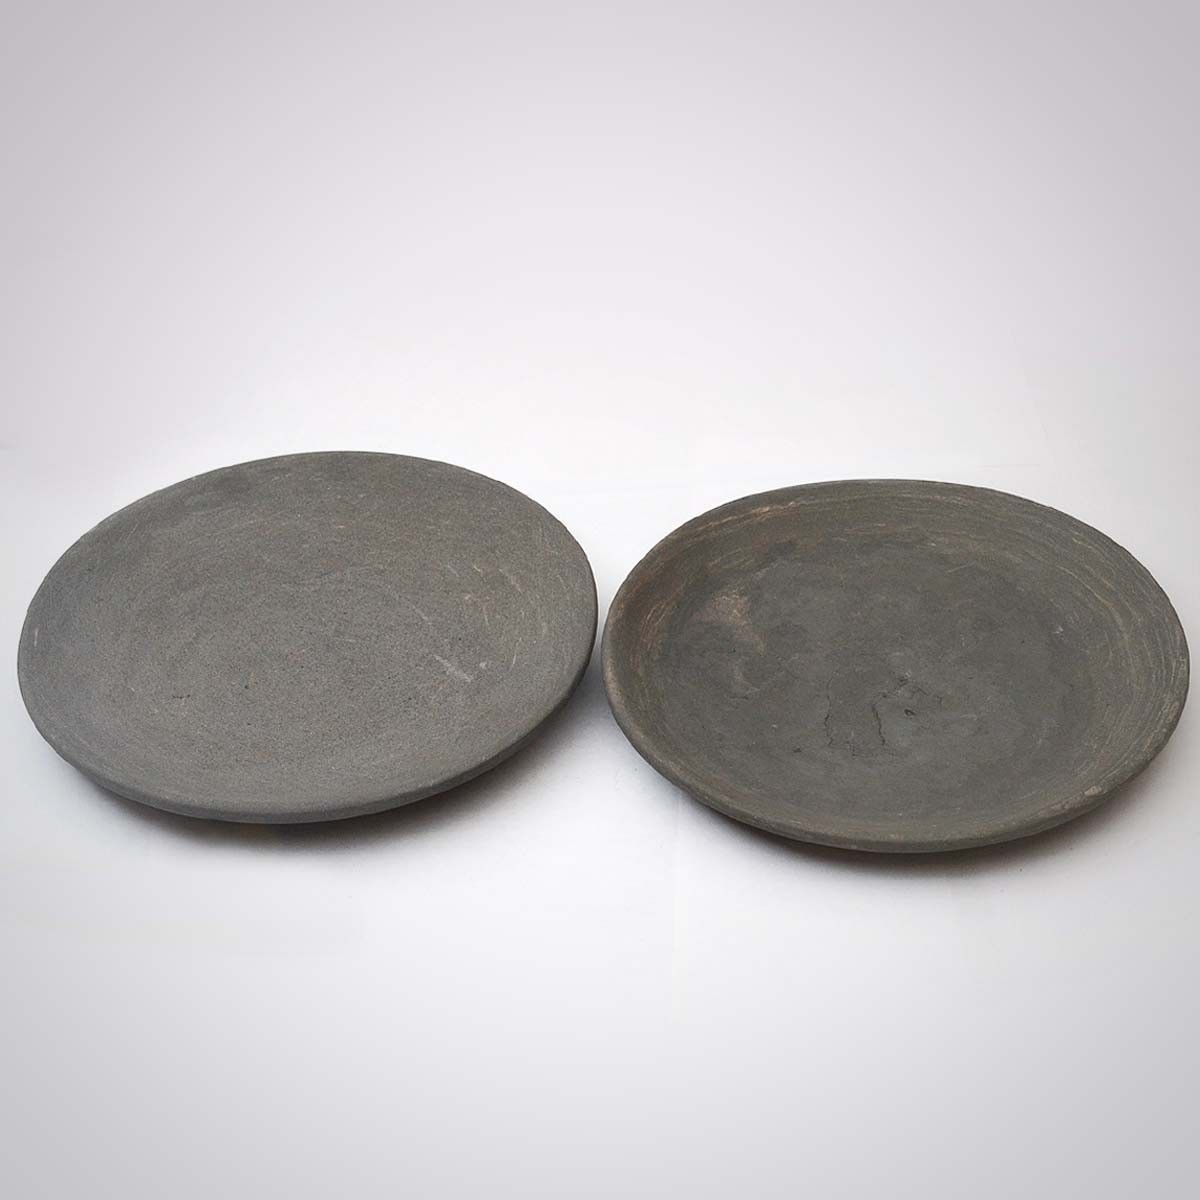 Stone Decorative Plate - Set of two